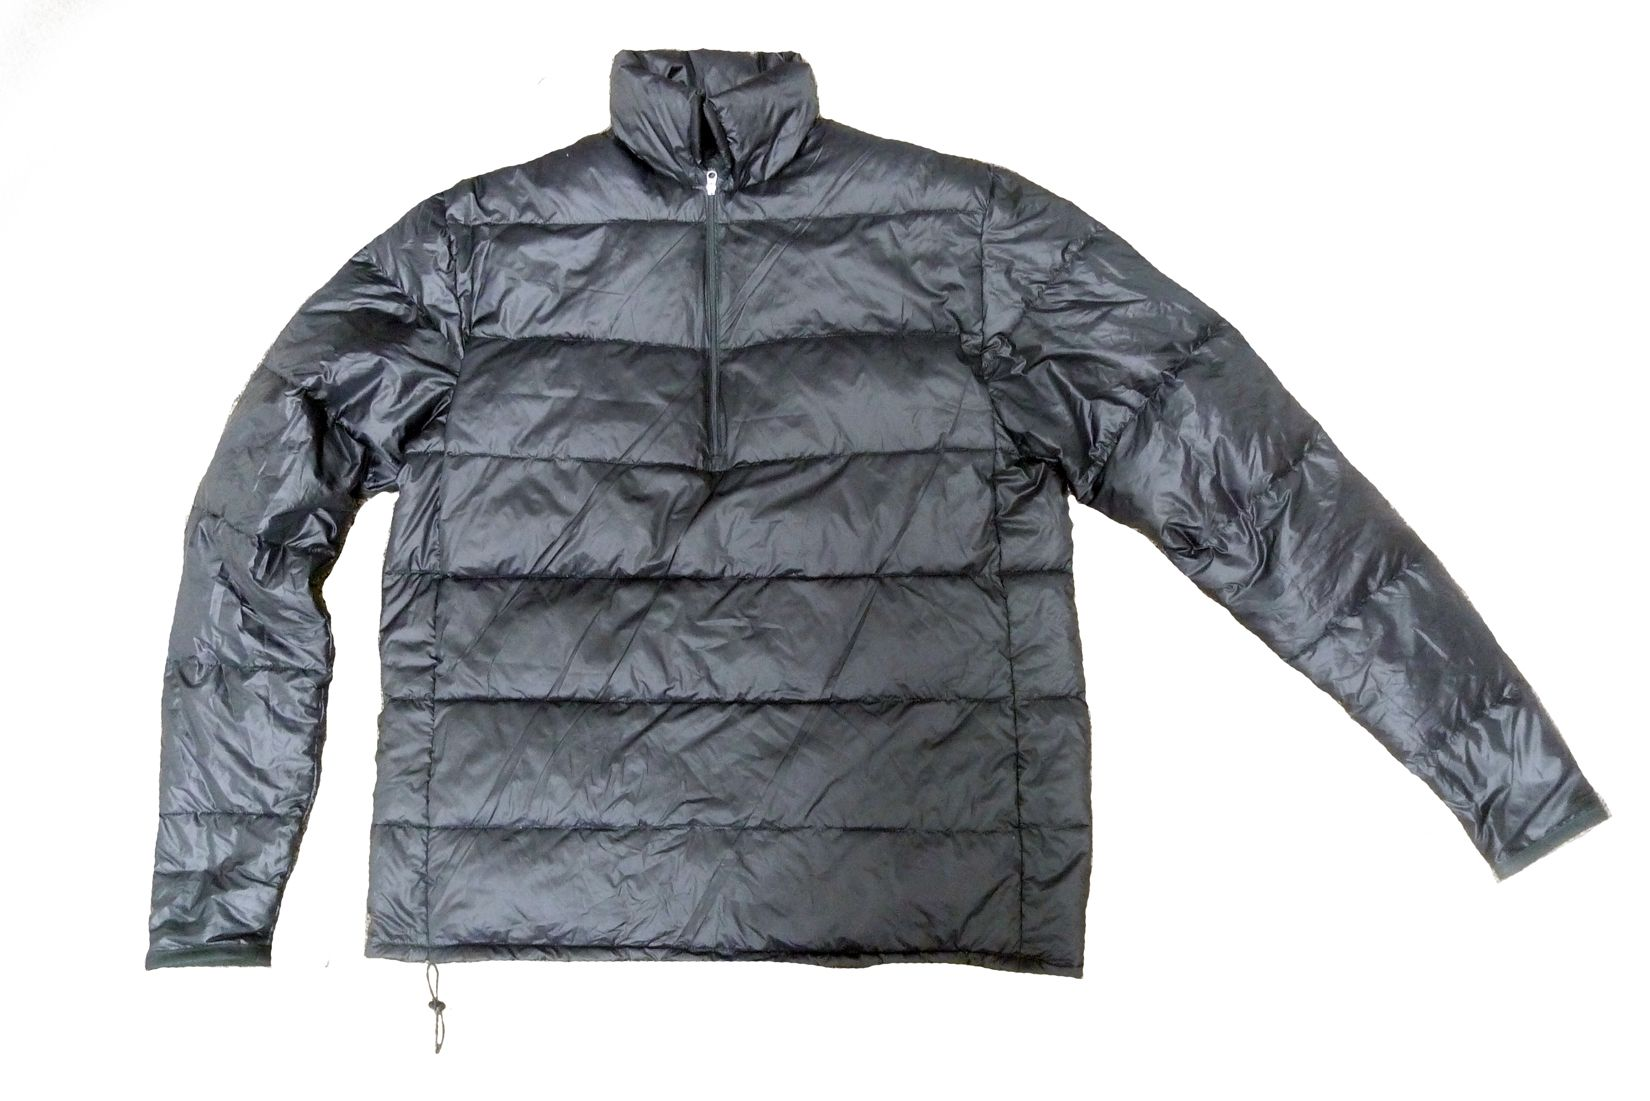 REI Airflyte Running Jacket with eVent Fabric Ultralight ...